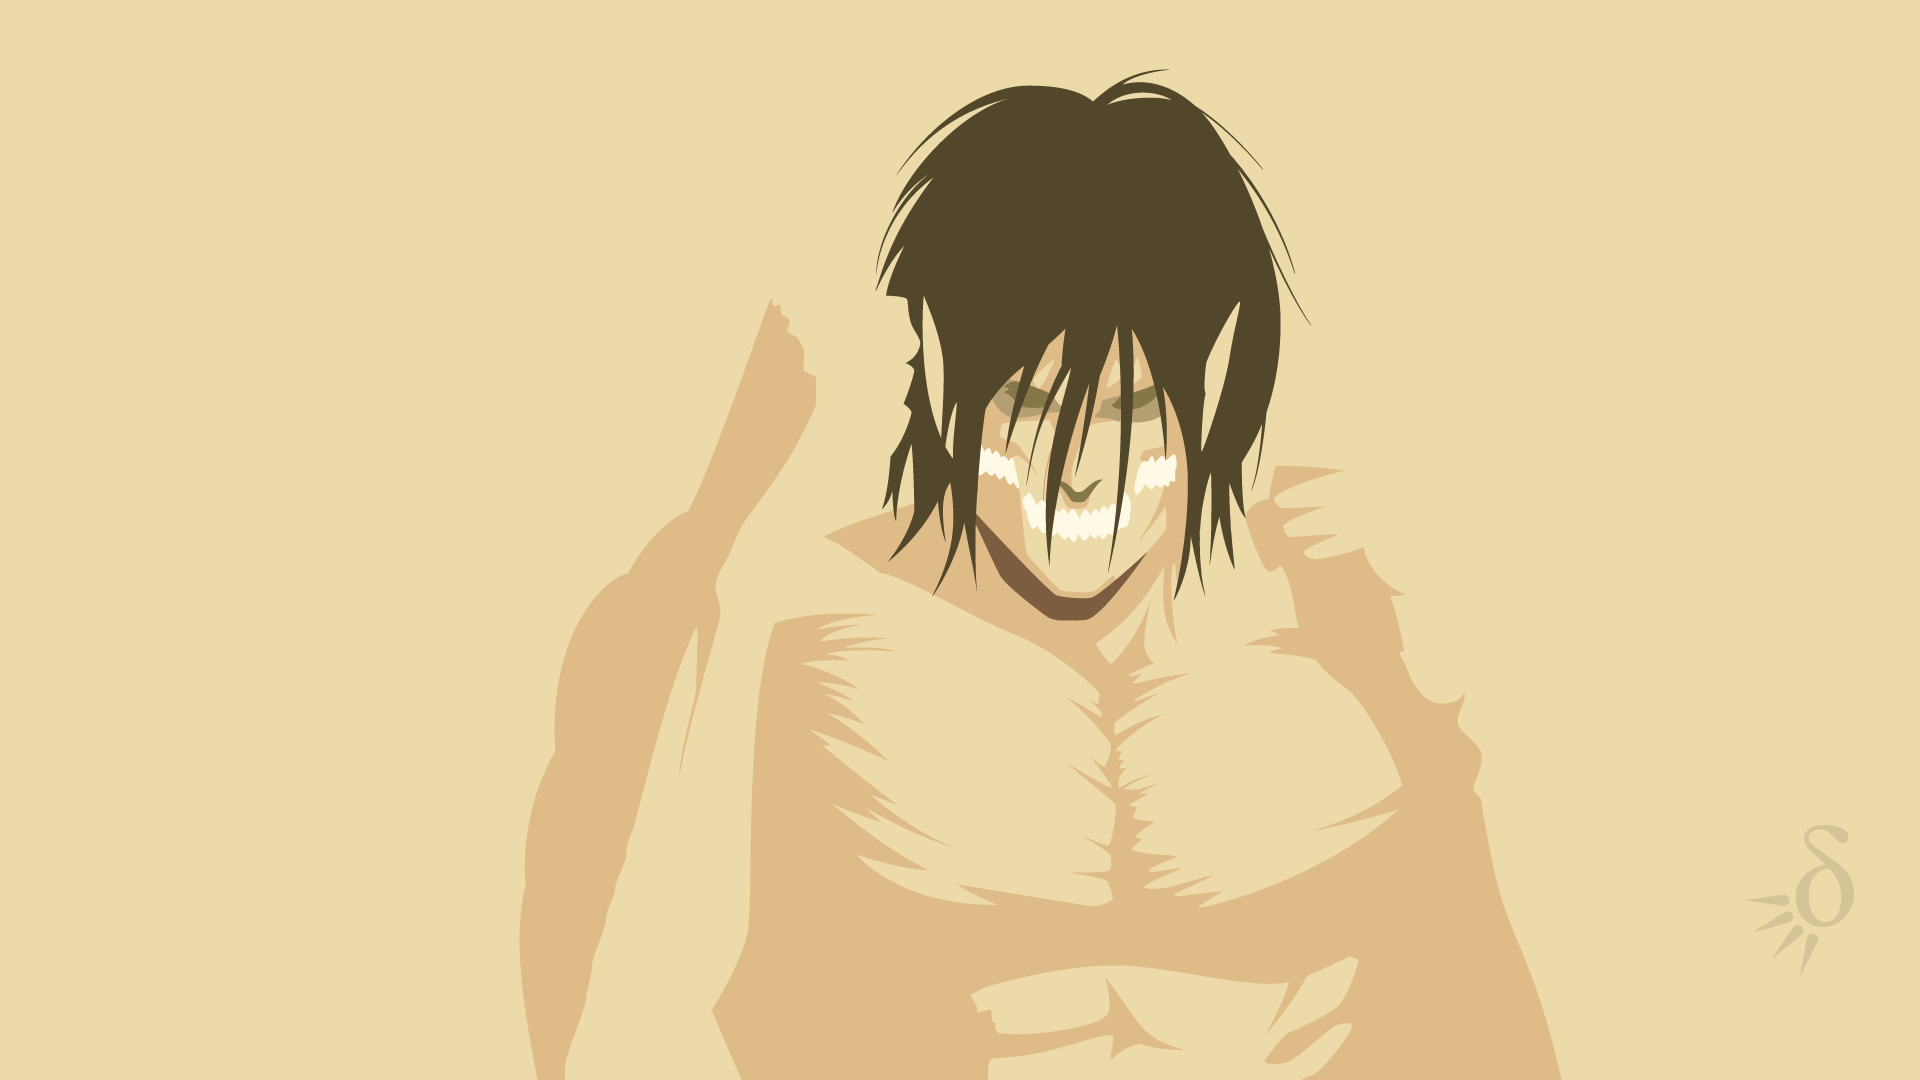 Eren Yeager Titan Hd Wallpaper Background Image 1920x1080 Id 640527 Wallpaper Abyss